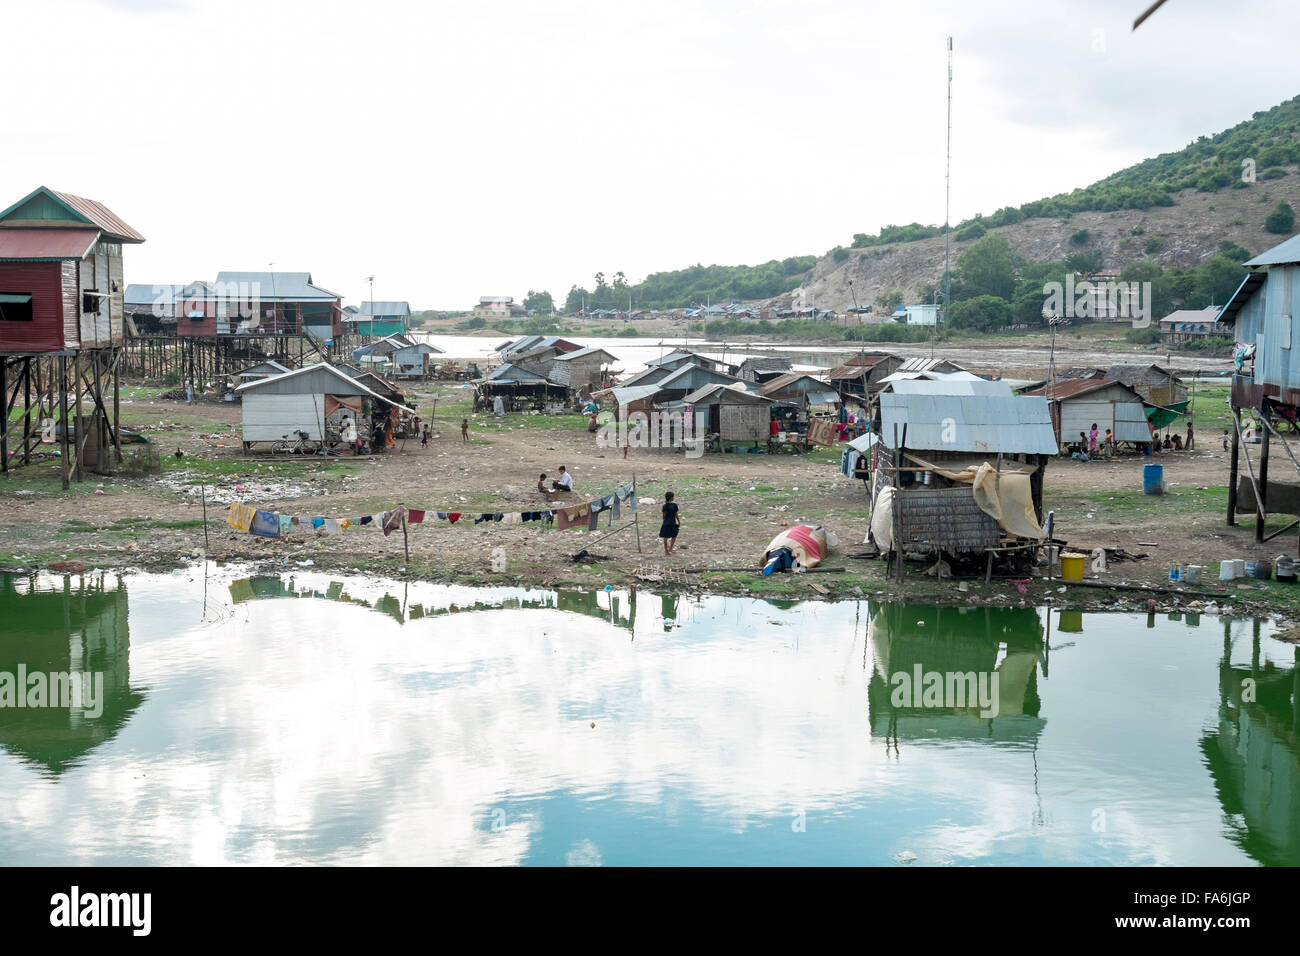 Shanty town of temporary houses near Siem Reap , Cambodia - Stock Image